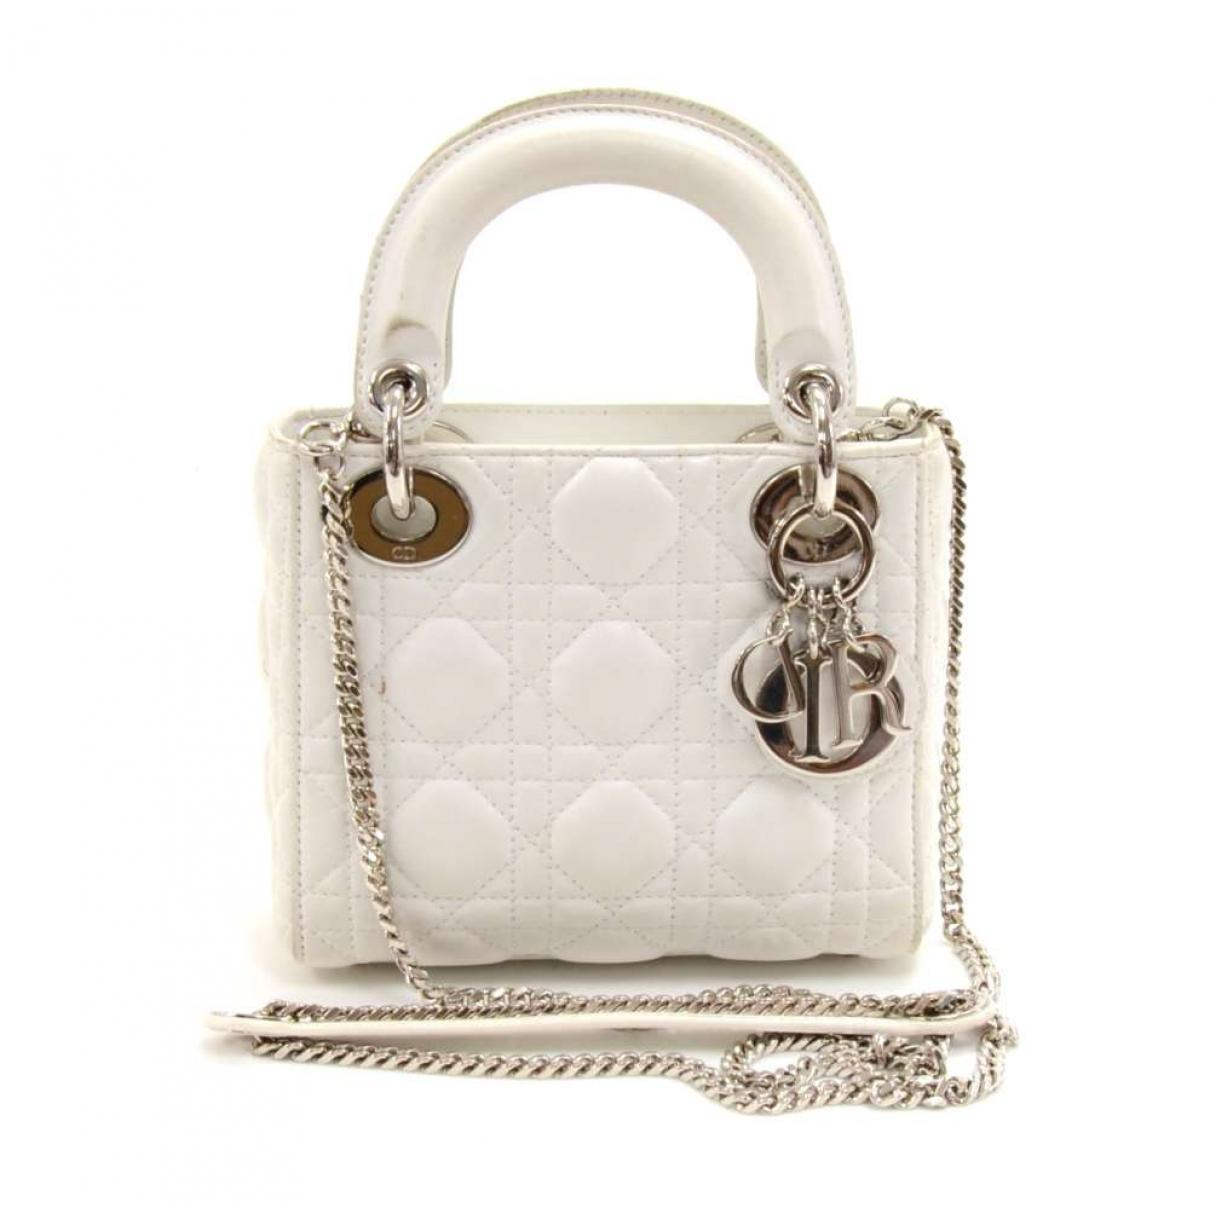 0ce203017669 Lyst dior pre owned white leather handbags in white jpg 1210x1210 Dior  leather handbag white